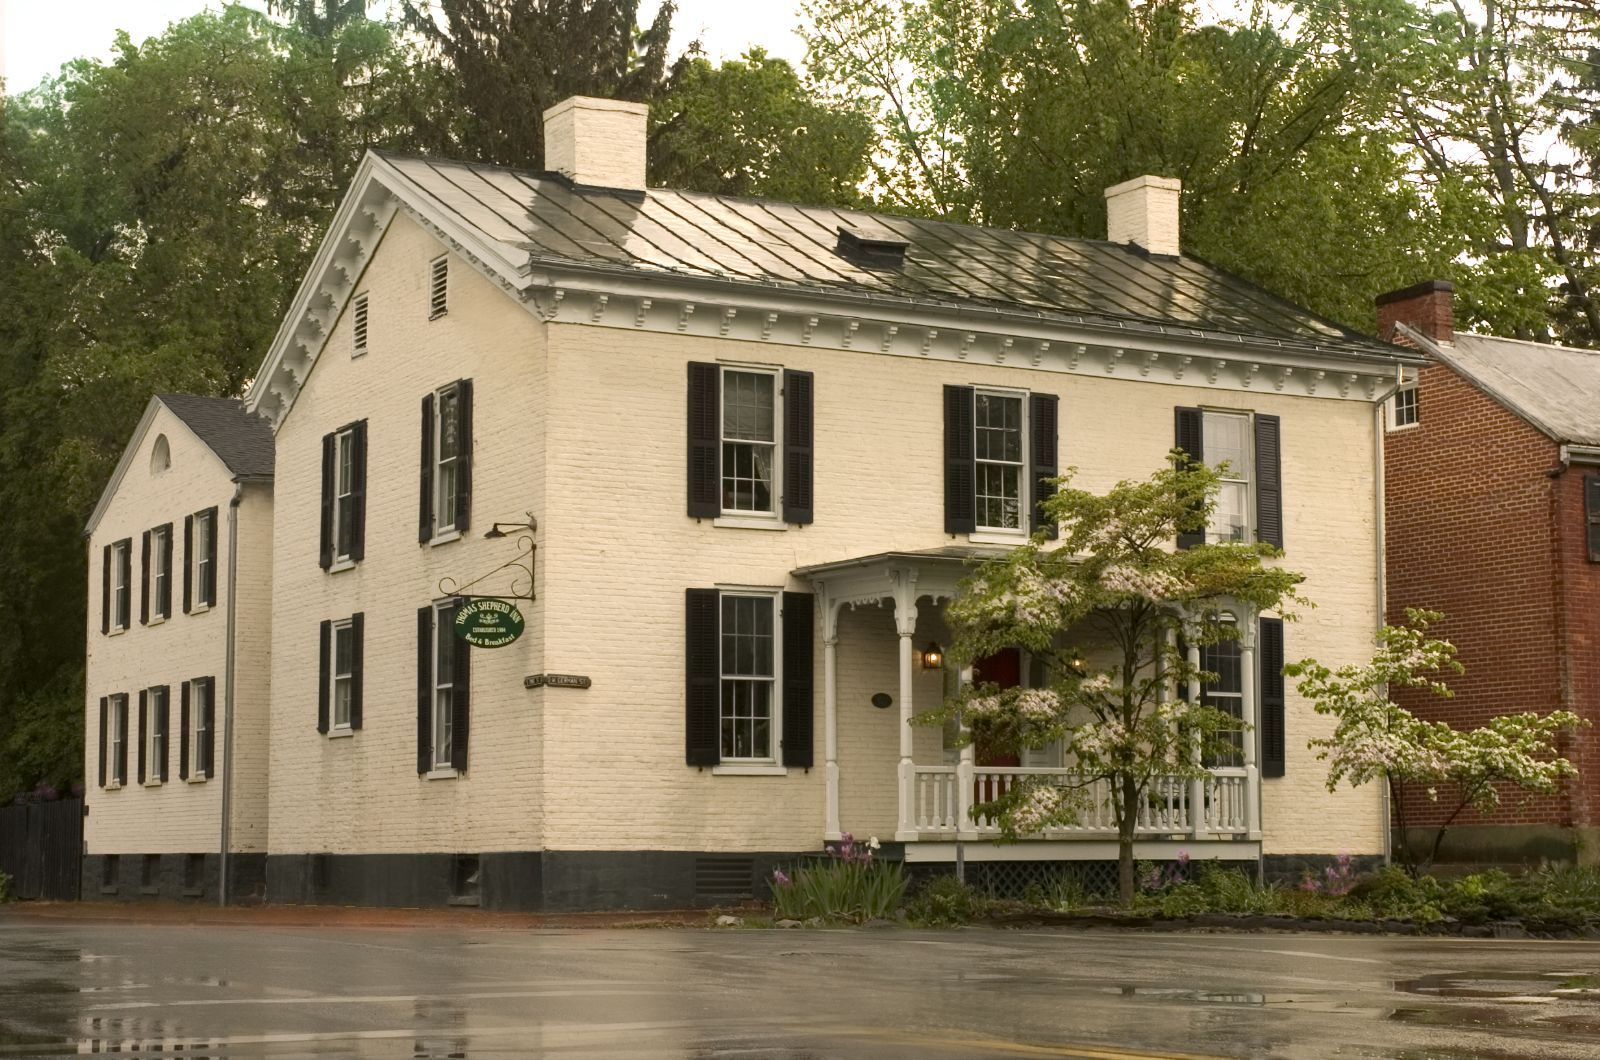 West Va Thomas Shepherd Inn Shepherdstown Wv Select Registry Bed Breakfasts Inns